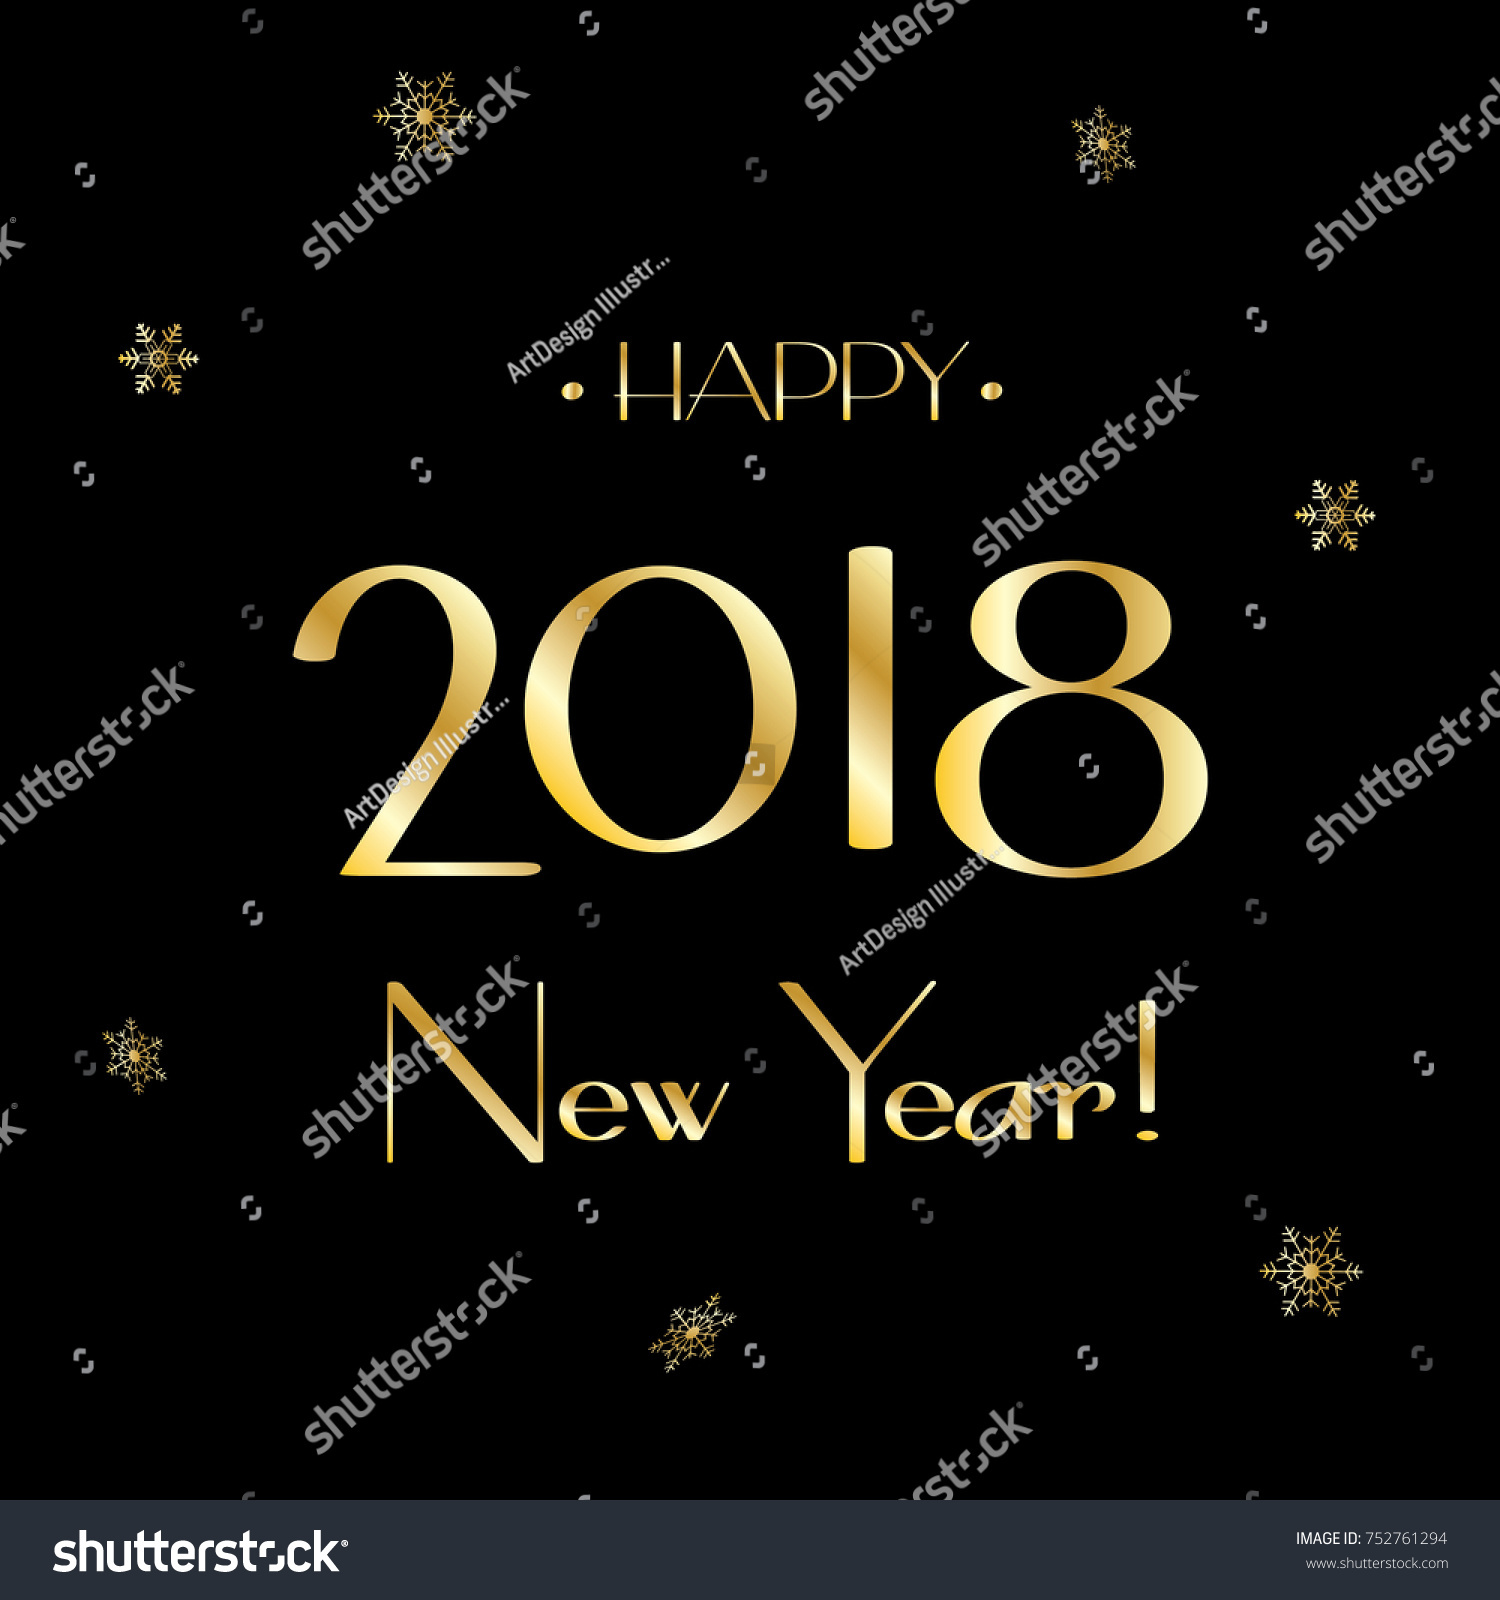 Happy New Year 2018 Luxury Greeting Stock Vector 752761294 ...